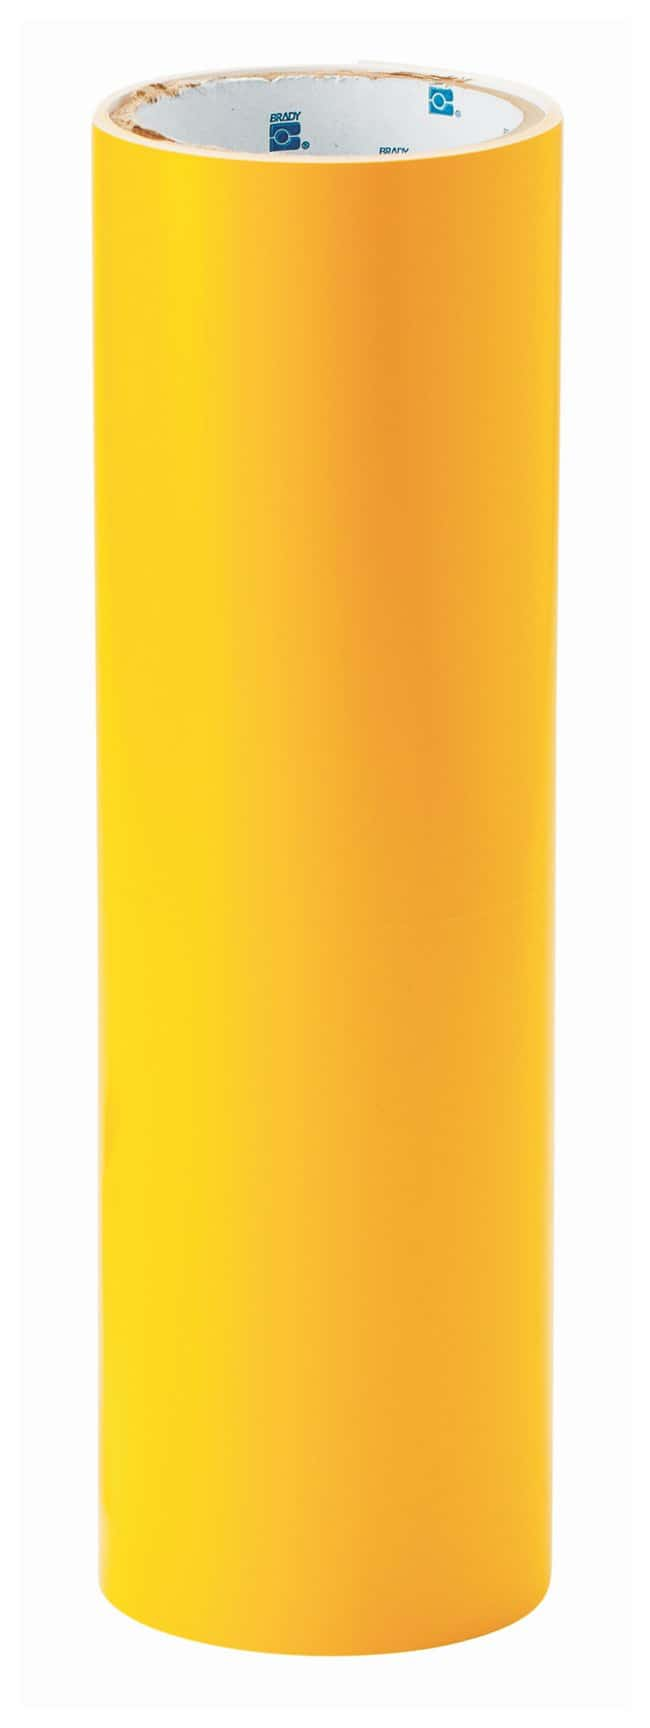 Brady Shadow Vinyl Rolls Color: Yellow:Racks, Boxes, Labeling and Tape